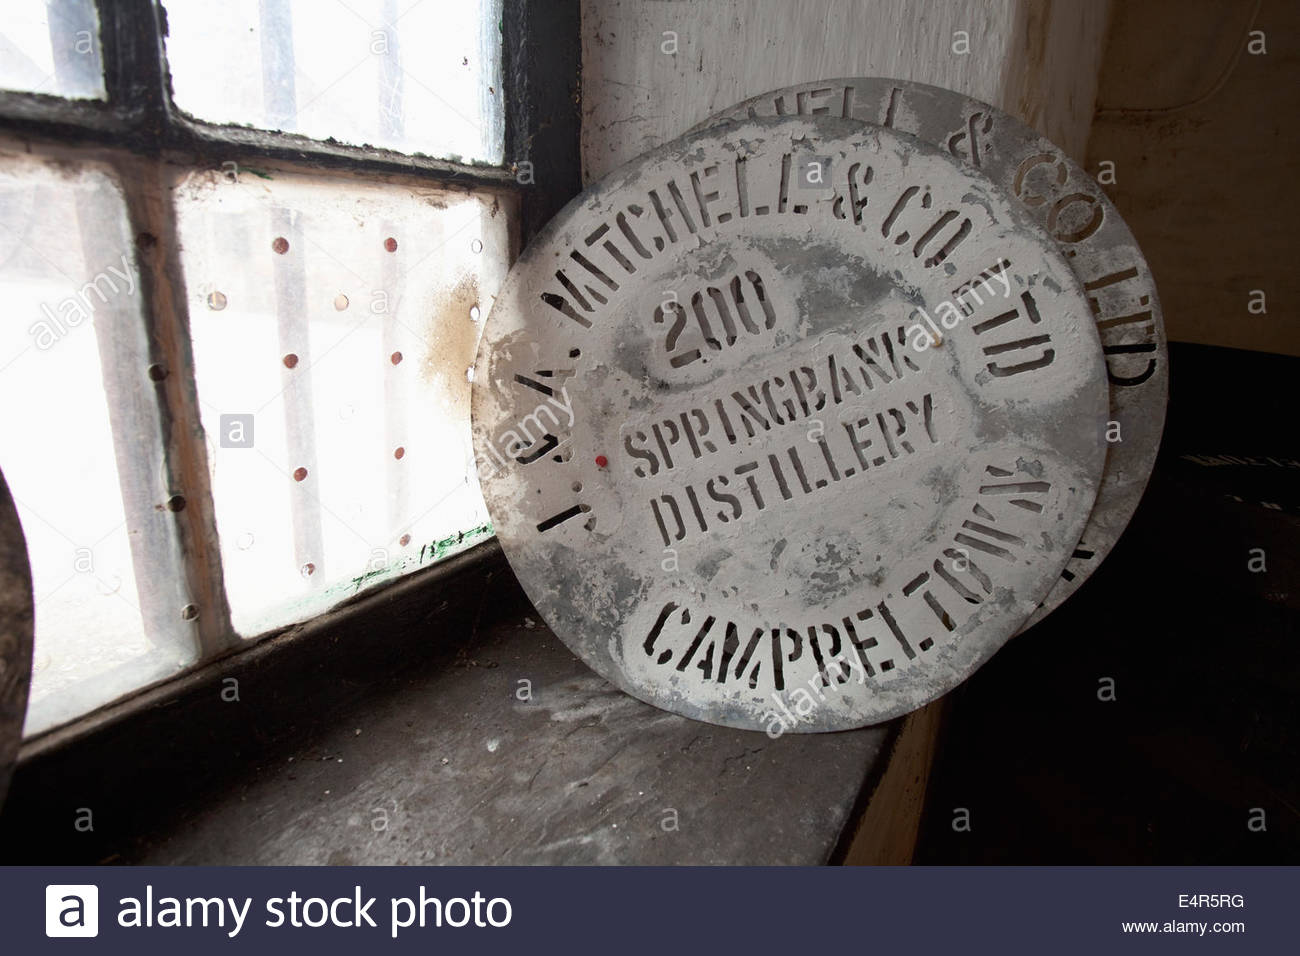 Stencils for labelling whisky casks on a windowsill at the Springbank Distillery, Campbeltown, Kintyre, Argyll, - Stock Image